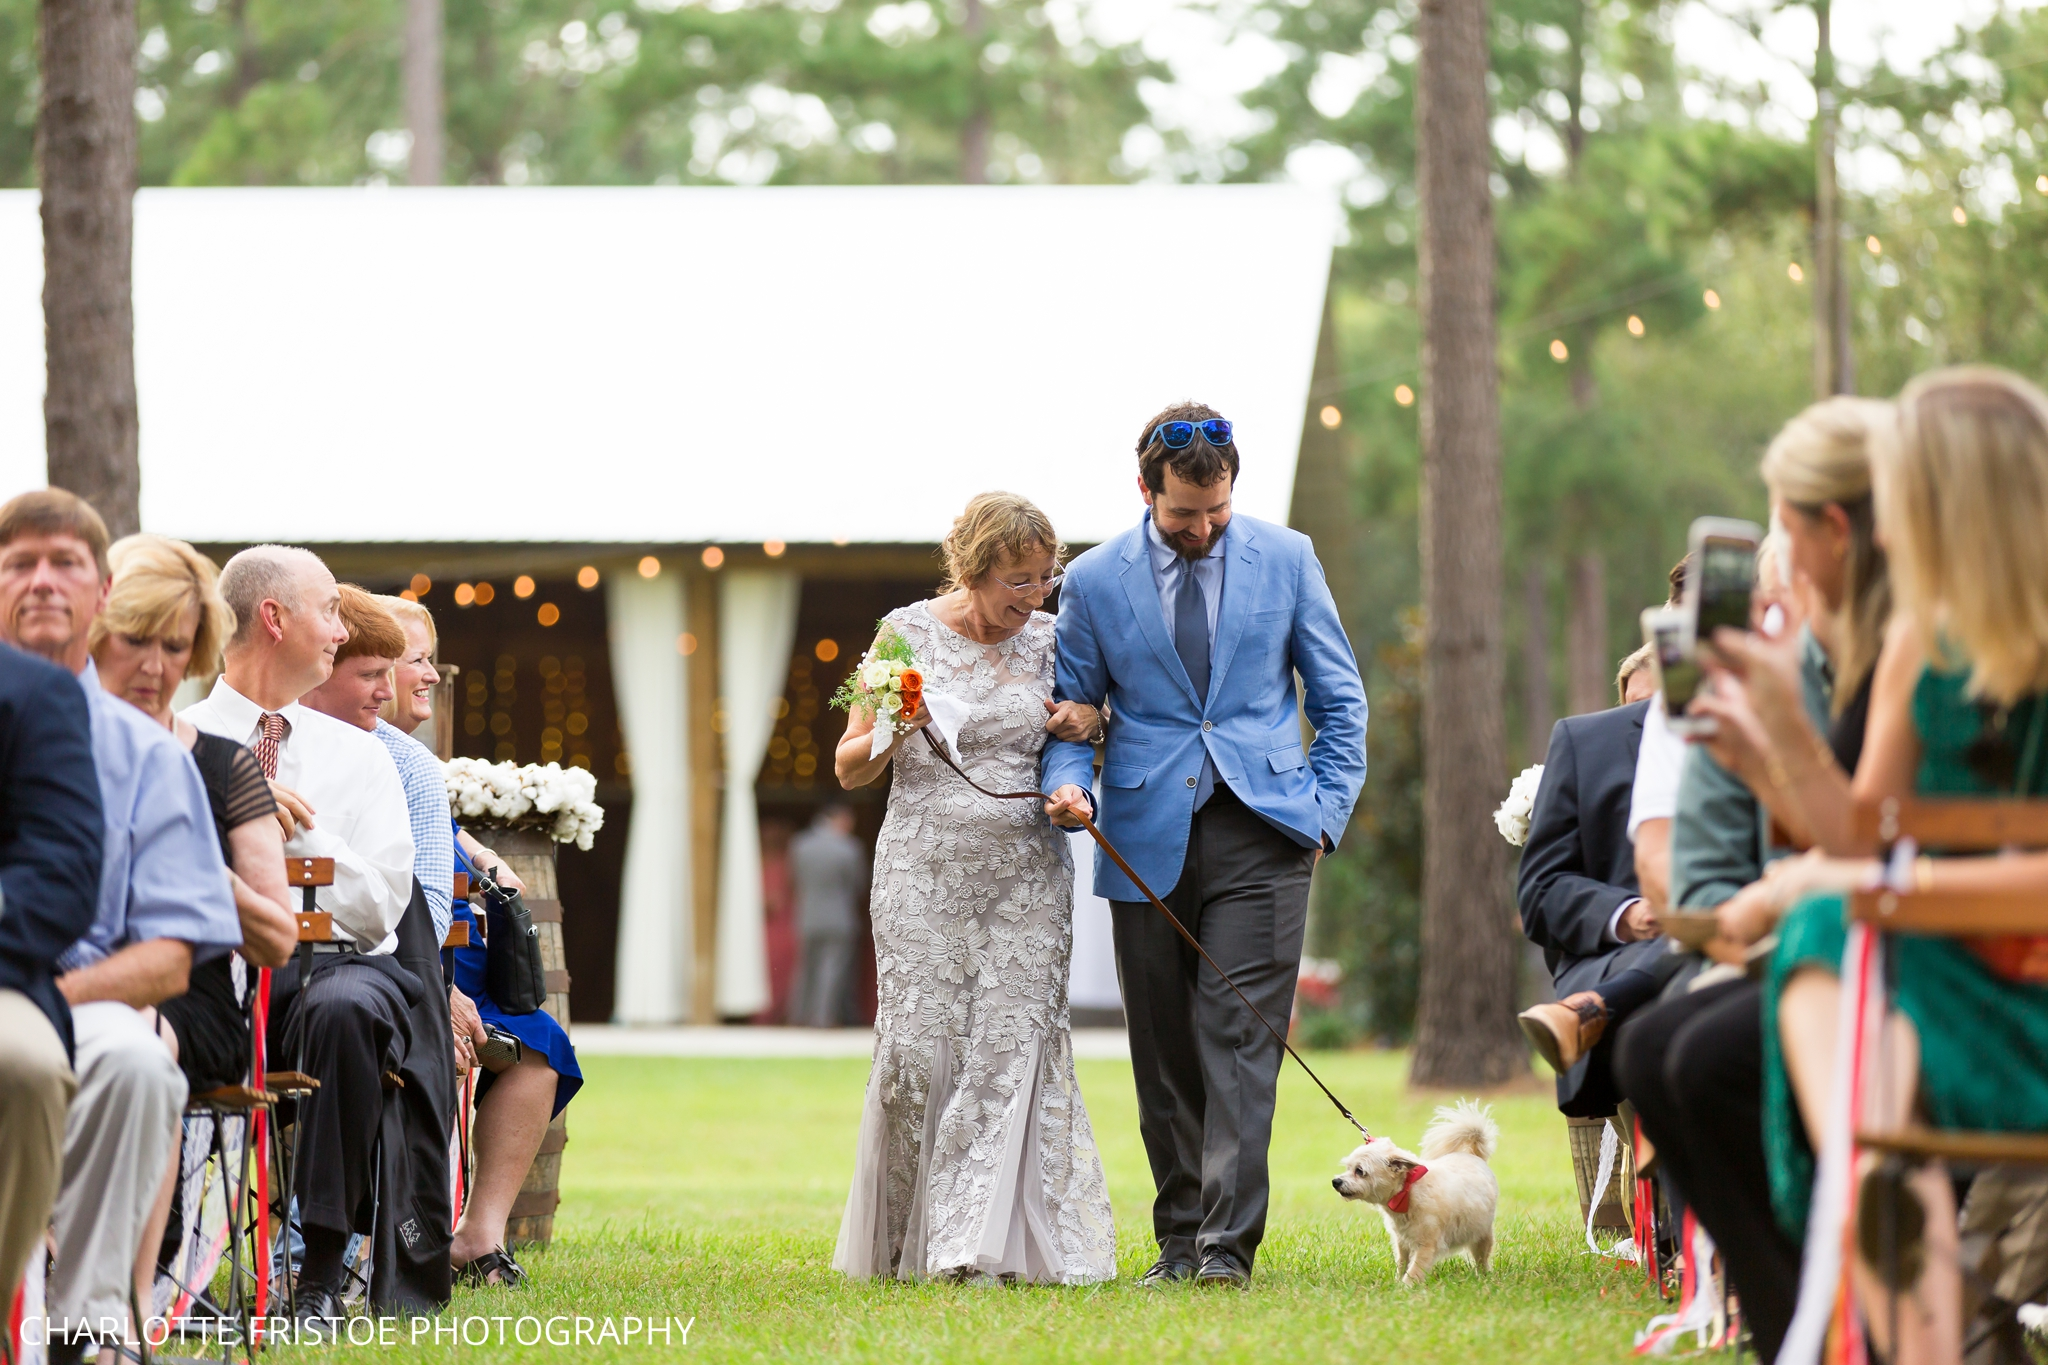 Loblolly_Plantation_Wedding-35.jpg